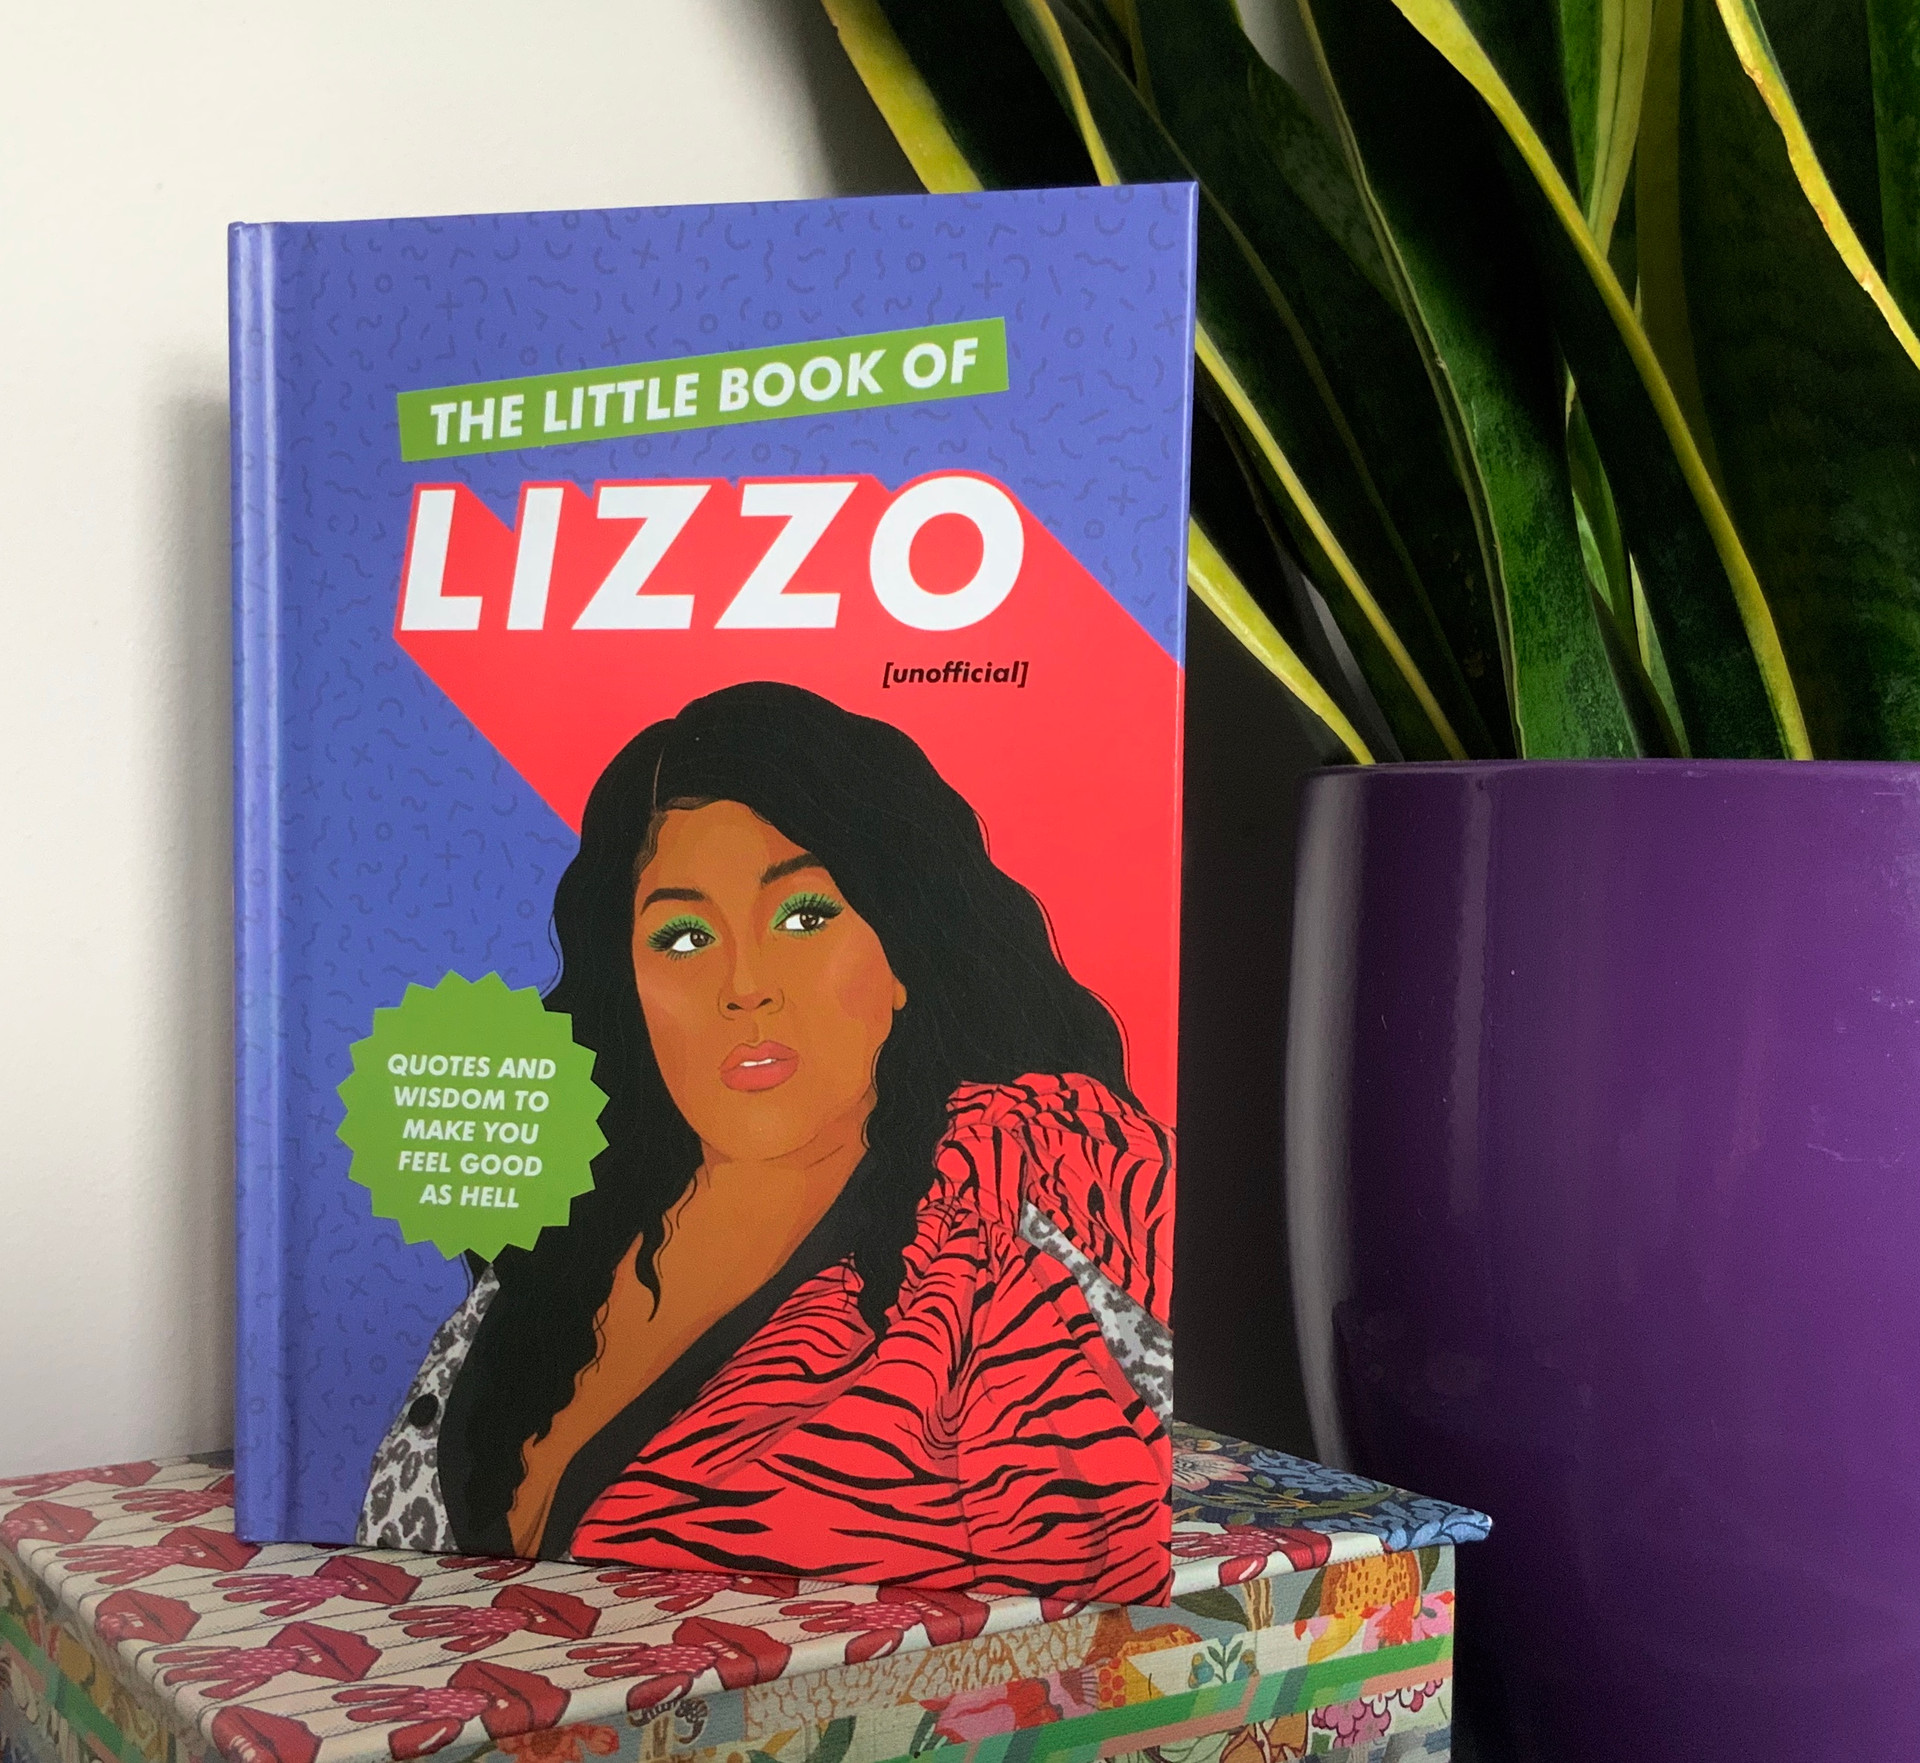 The Little Book of Lizzo